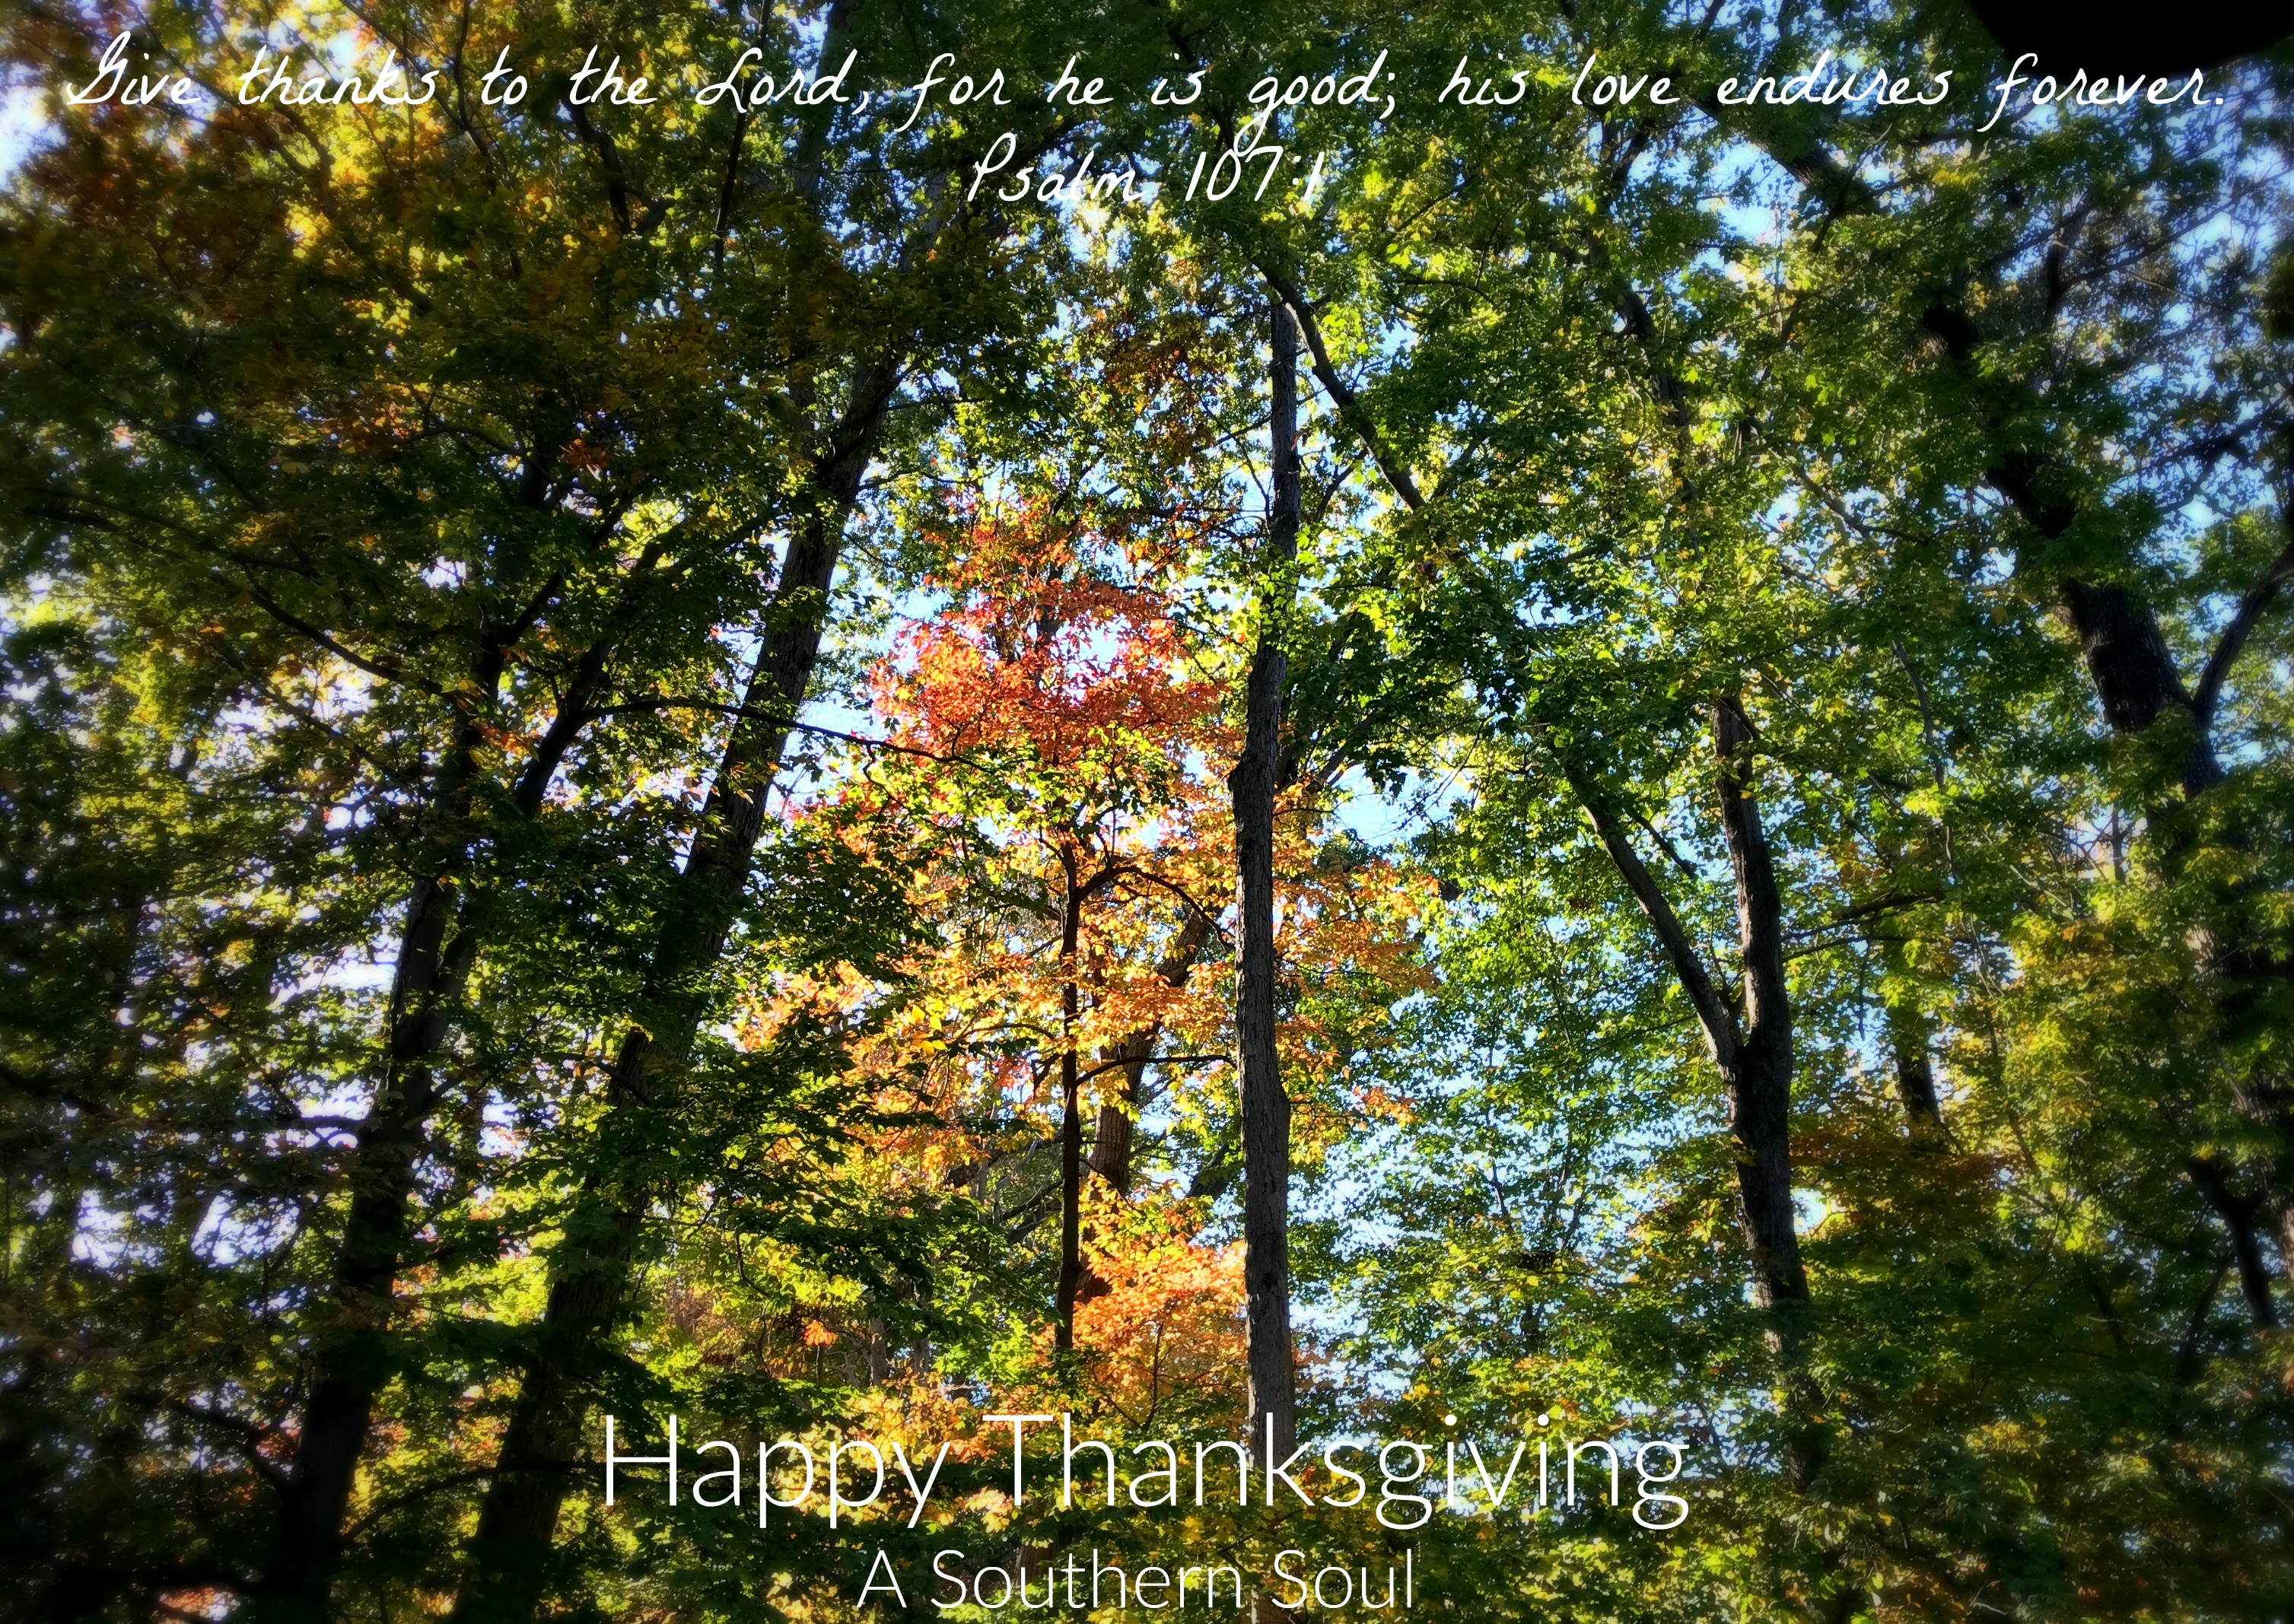 happy-thanksgiving-leaves-2016